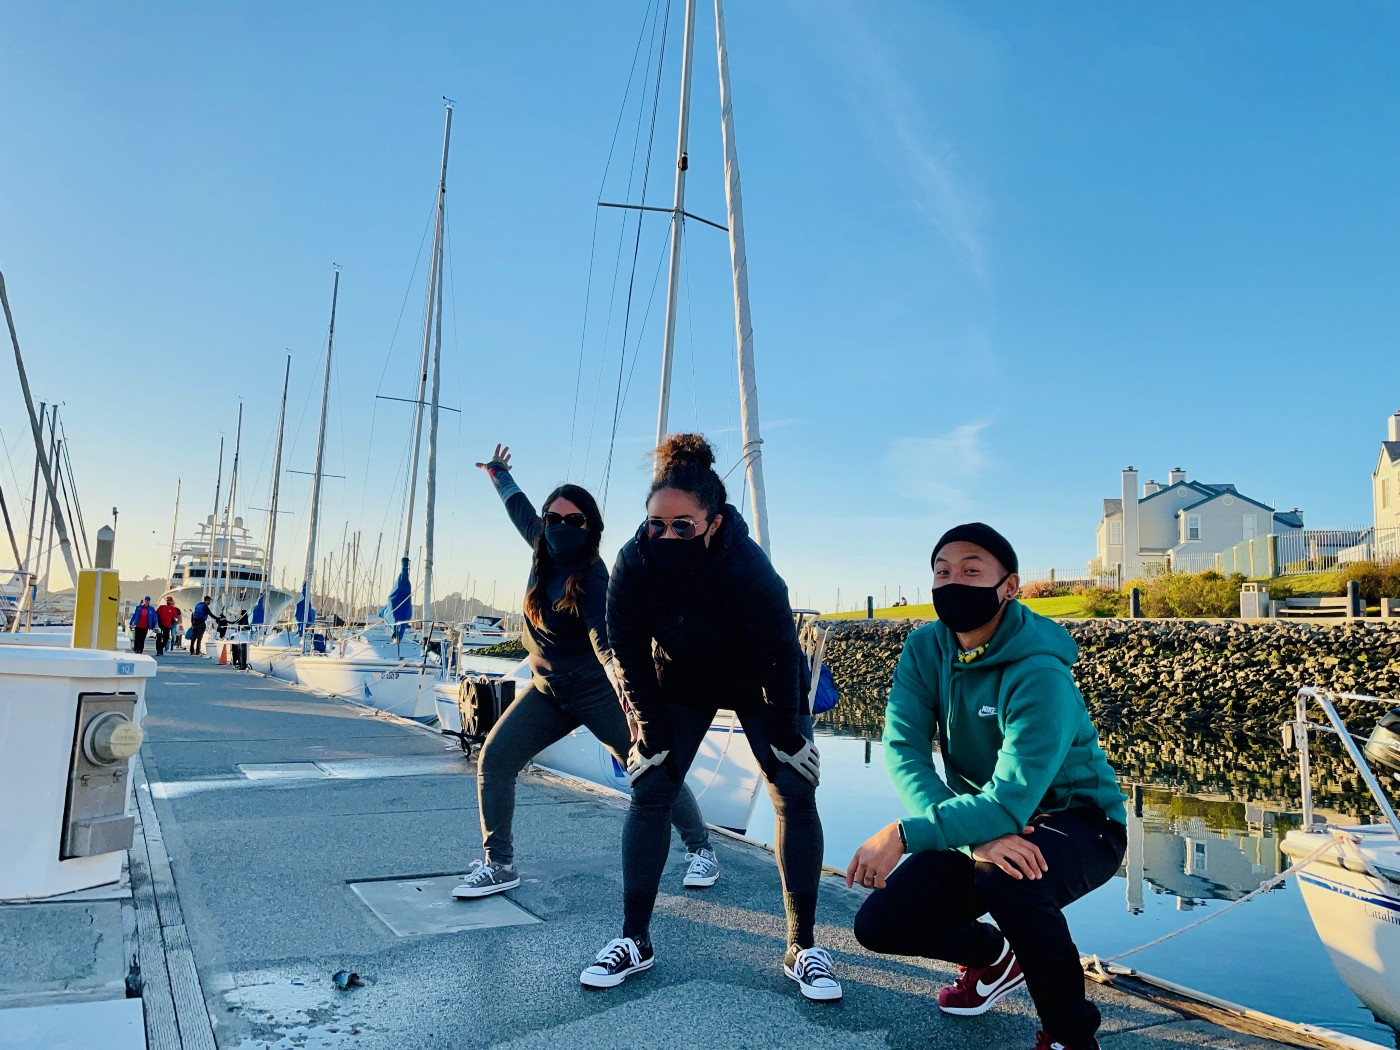 Image of three friends: Jessa takes a power stance with one arm open wide the other reaching down, Mariah crouches with her hands on her knees, and Geoff squats closer to the ground with his arms crossed and resting on his knees. The pose in front of their first keel boat.